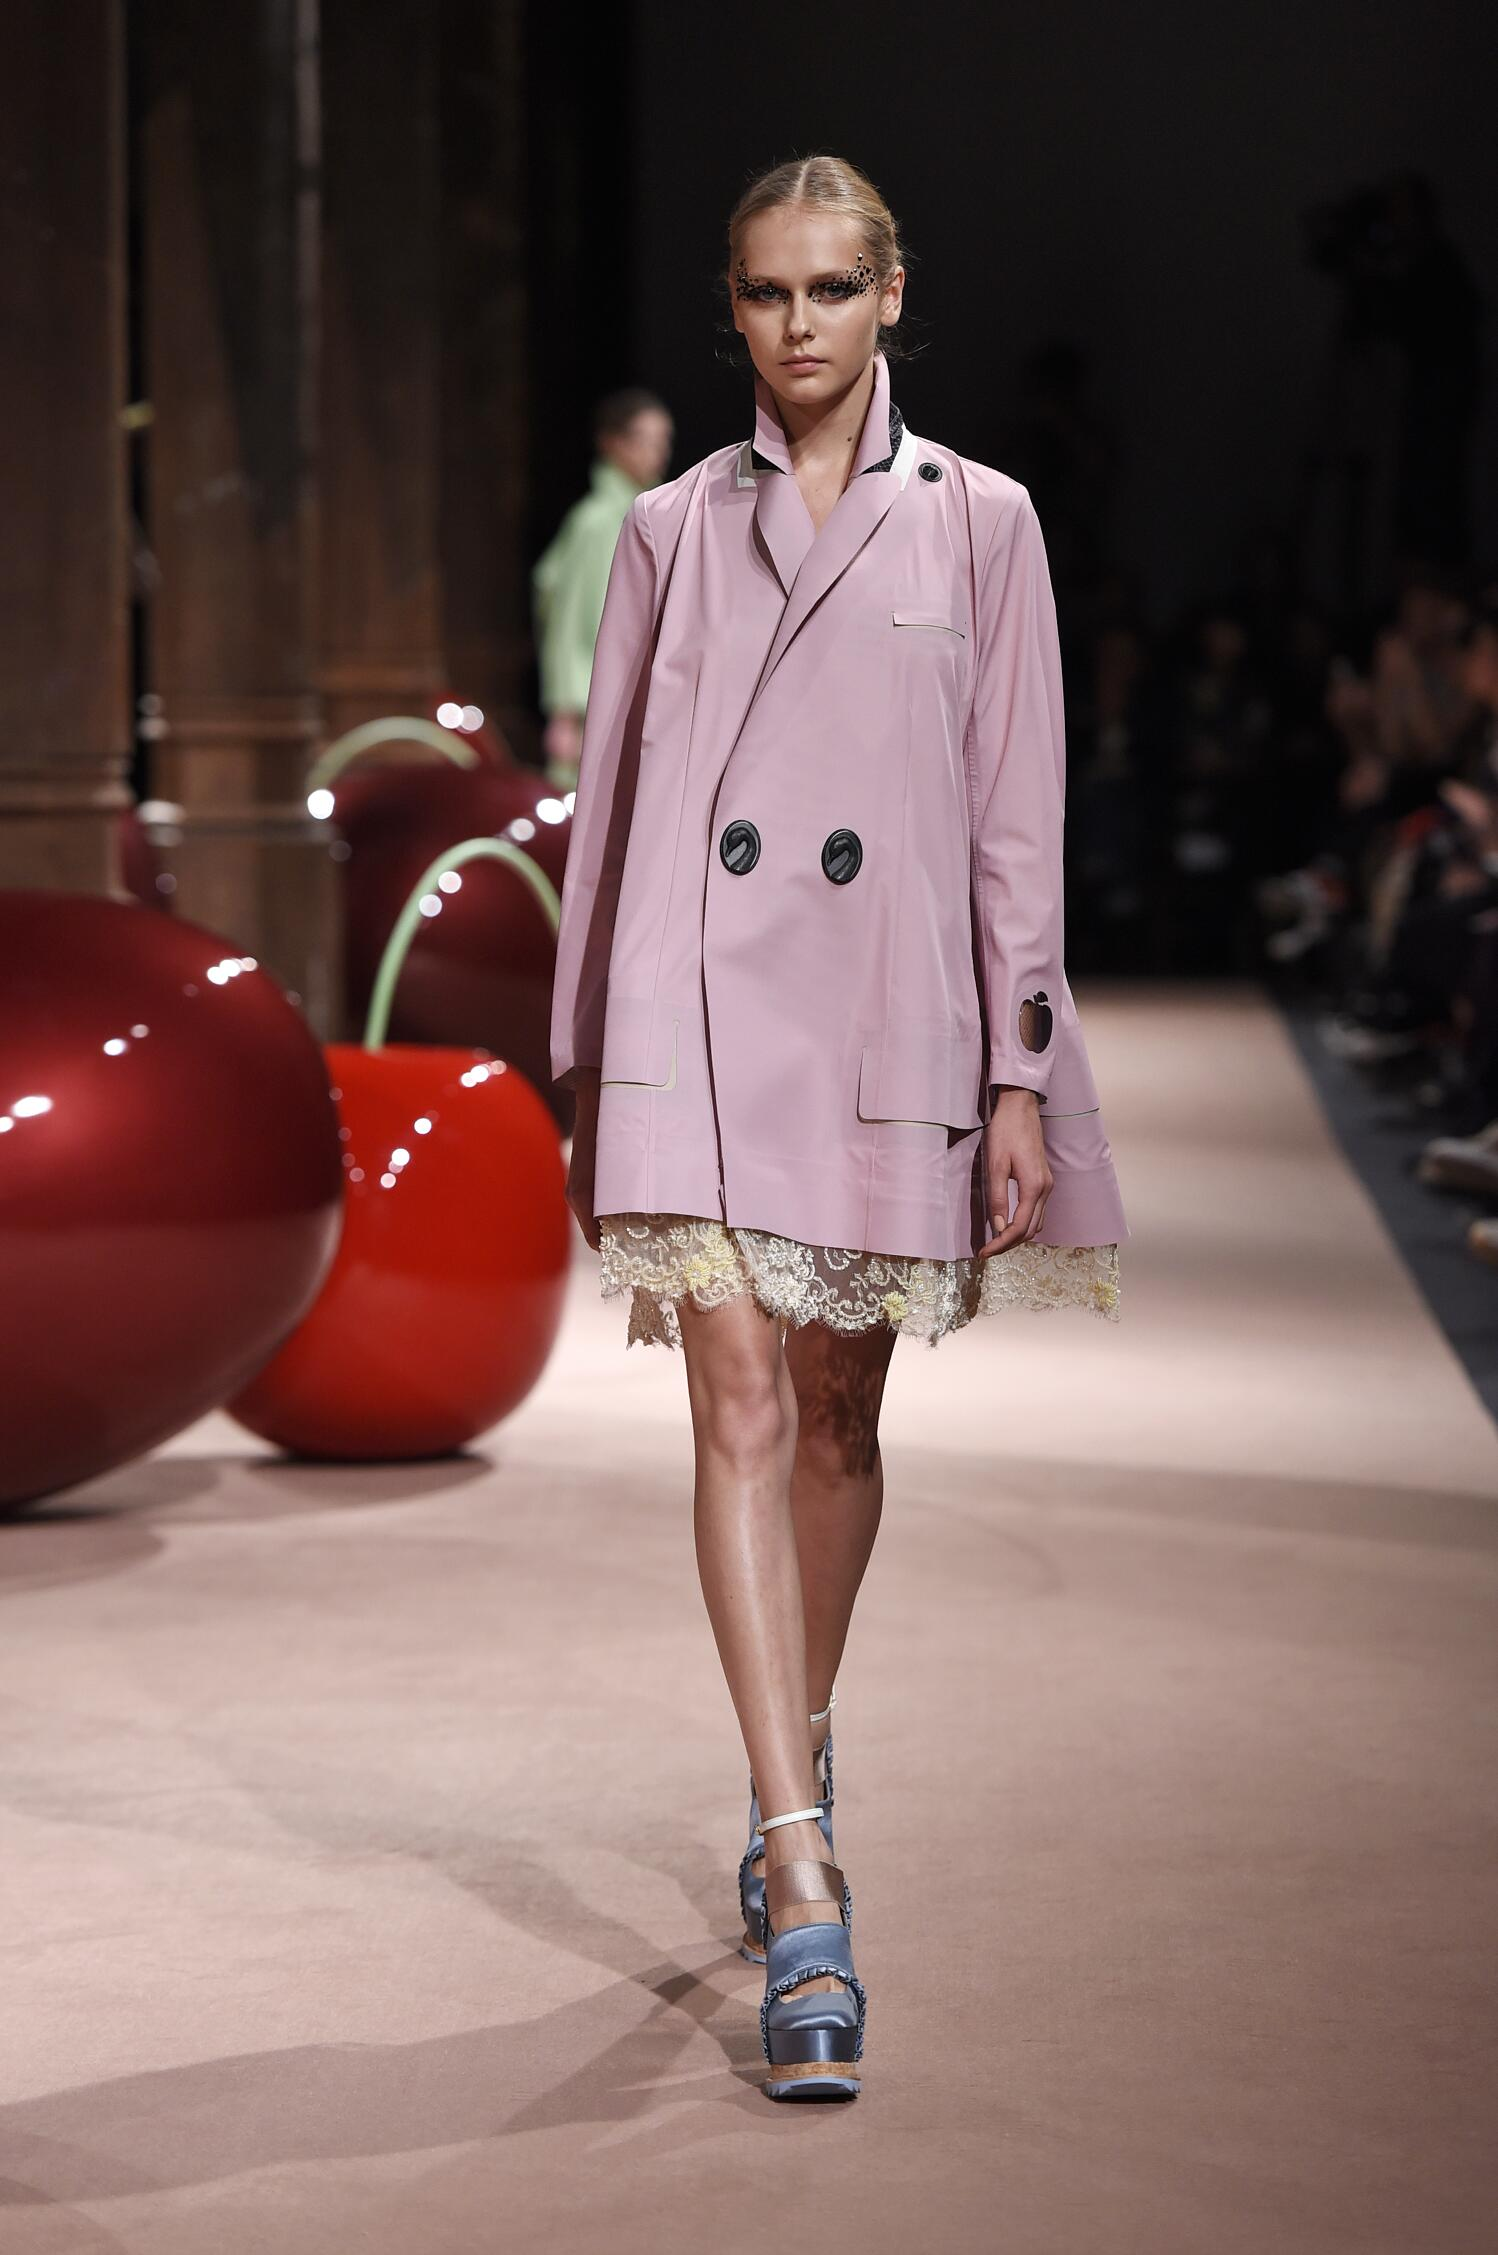 Spring 2015 Fashion Trends Undercover